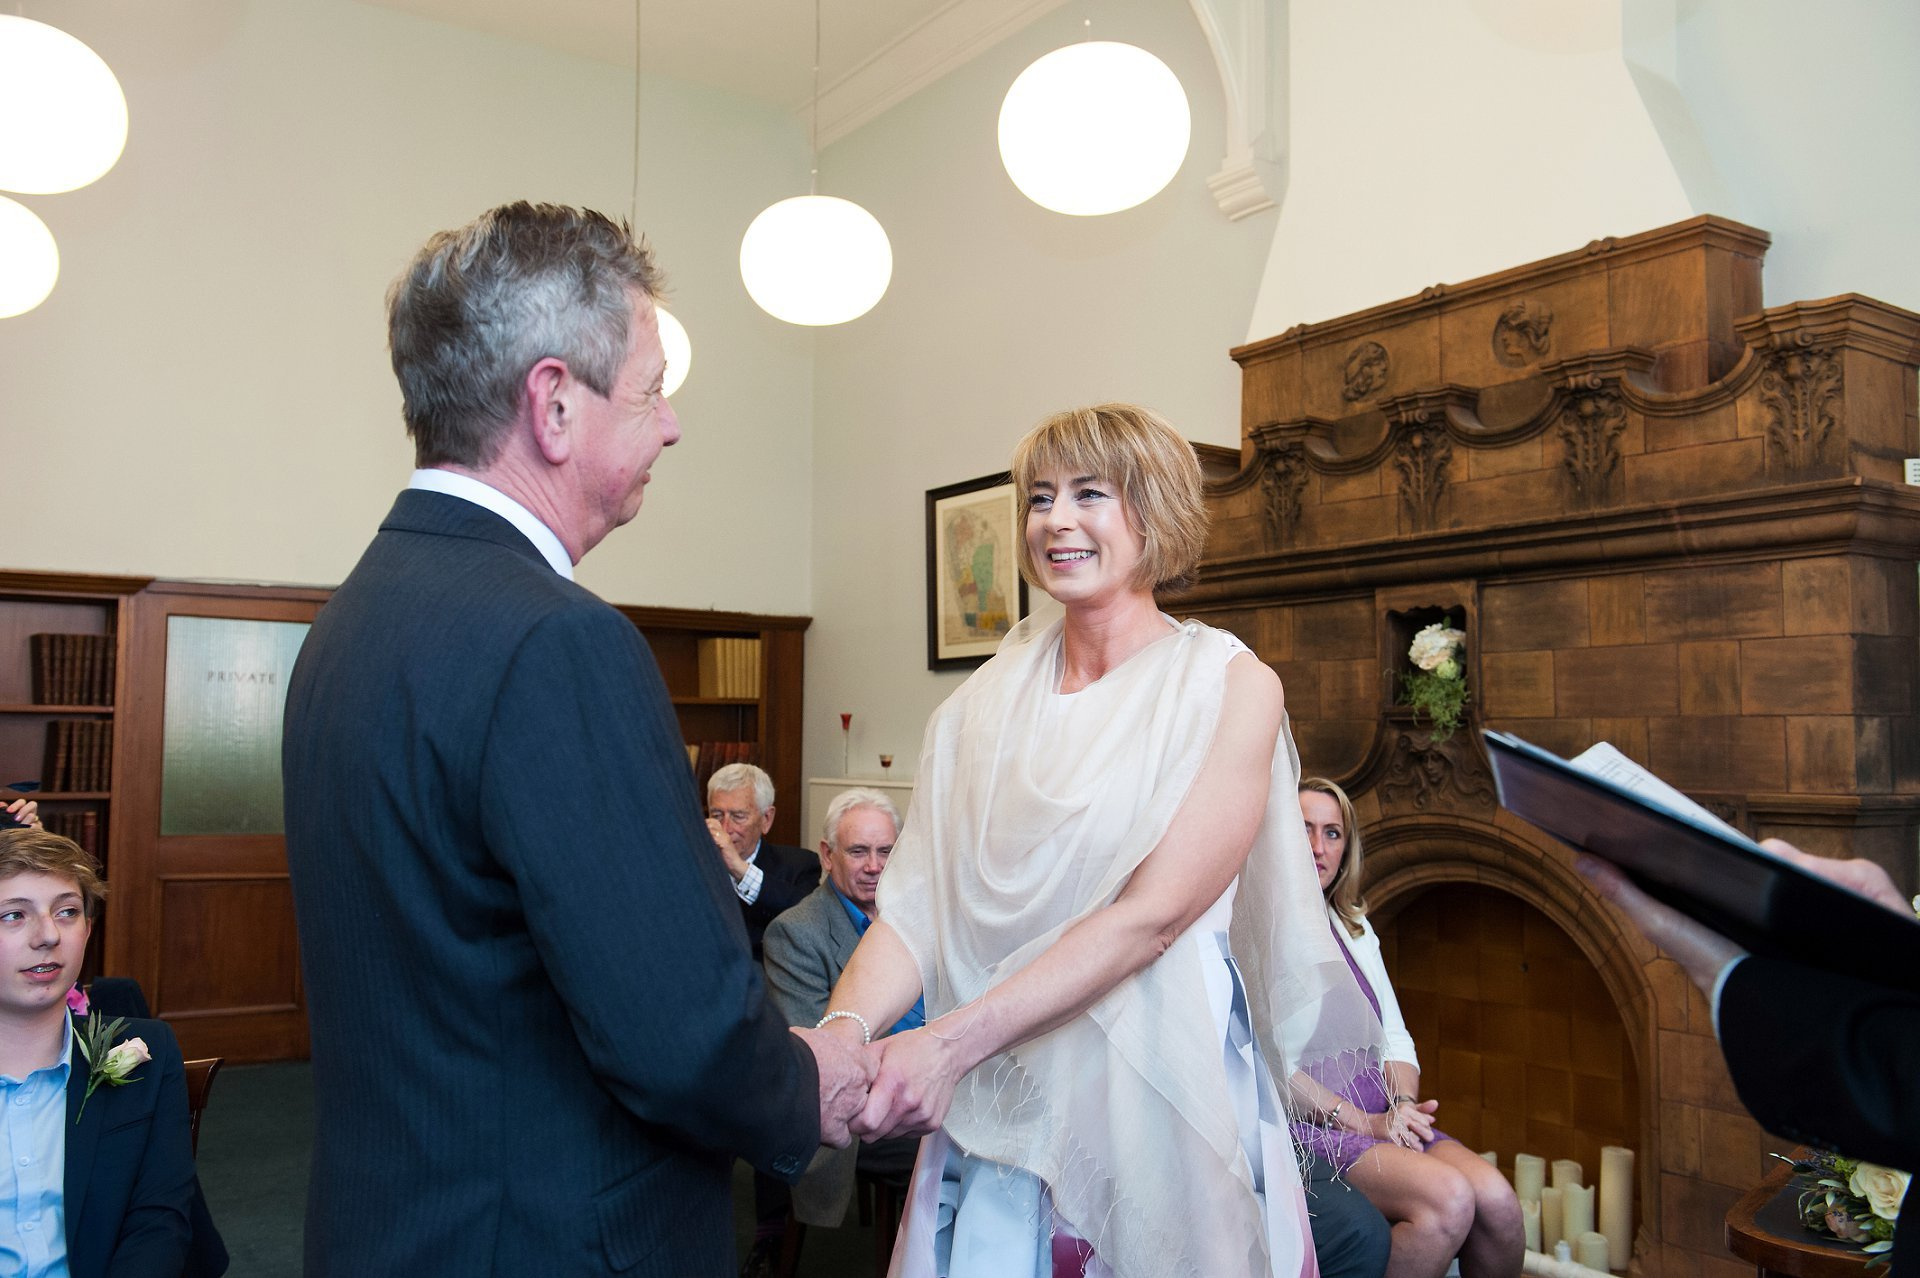 Bride & Groom exchange vows in the Marylebone Room of Mayfair Library, the Marylebone Registry Office